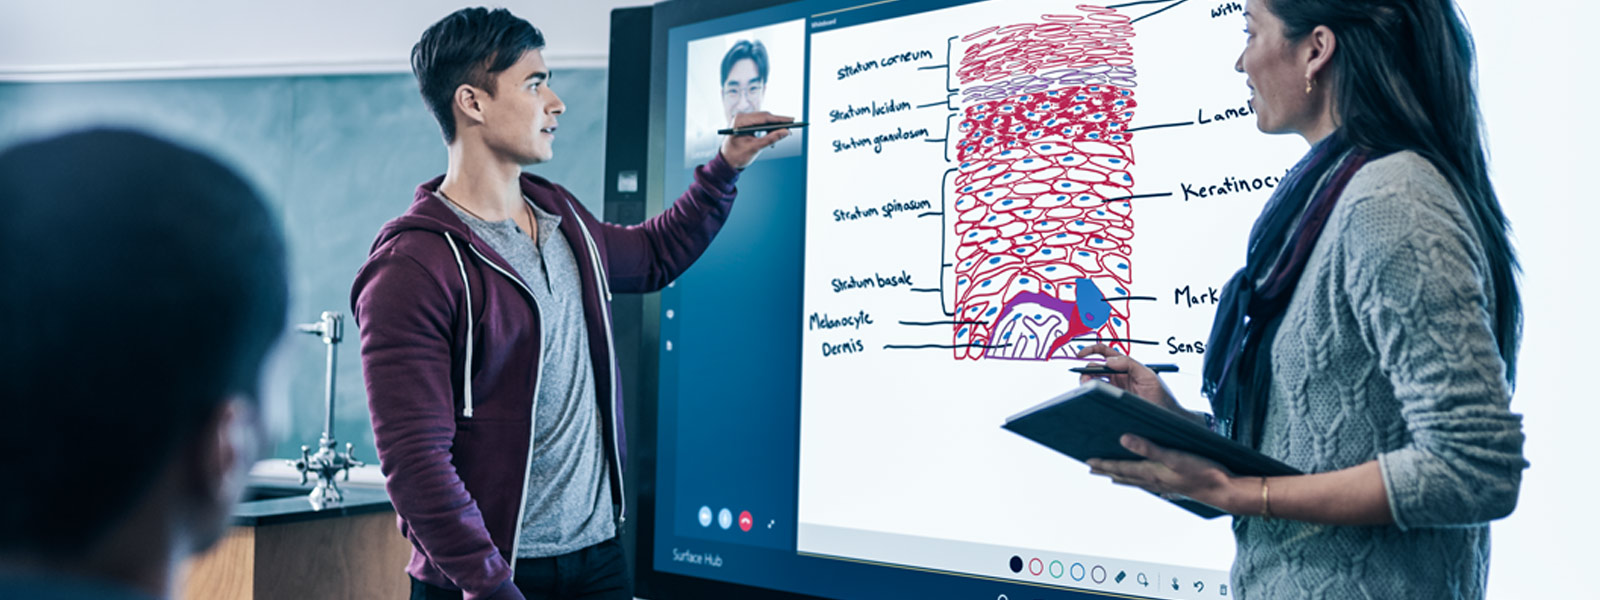 : Two students use Surface Pen on a Surface Hub screen, using Skype and Microsoft Whiteboard, in a classroom setting.